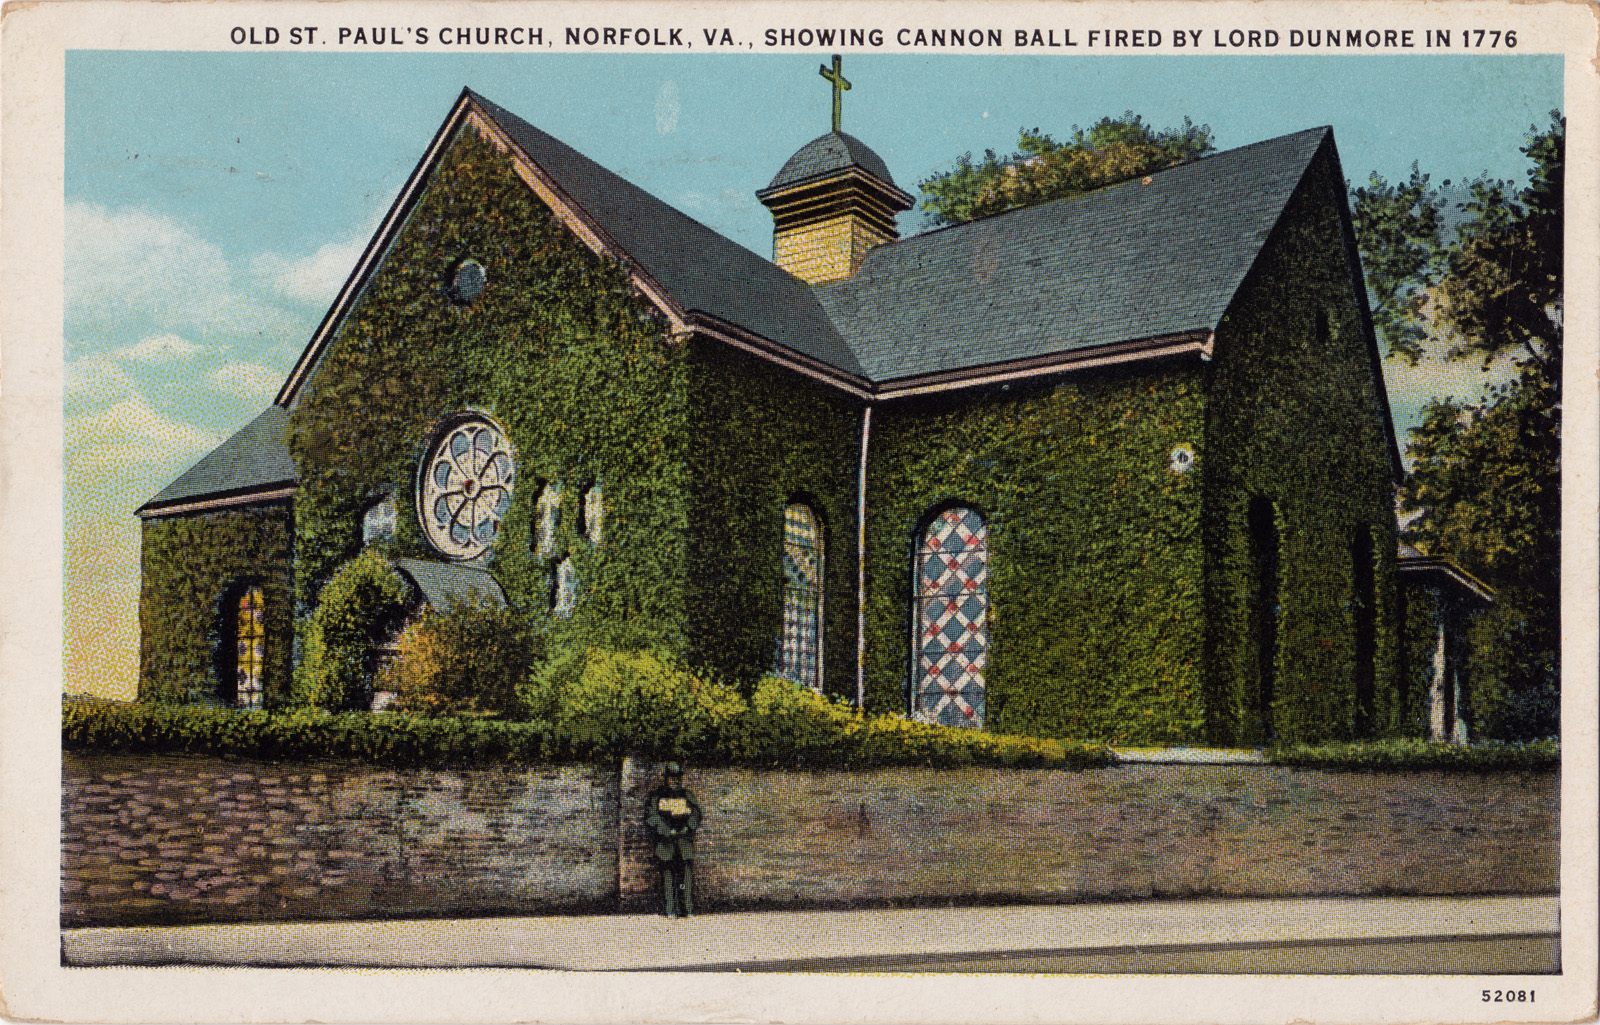 St. Paul's Church in a 1907 postcard.  Note the cannonball lodged in the upper right.